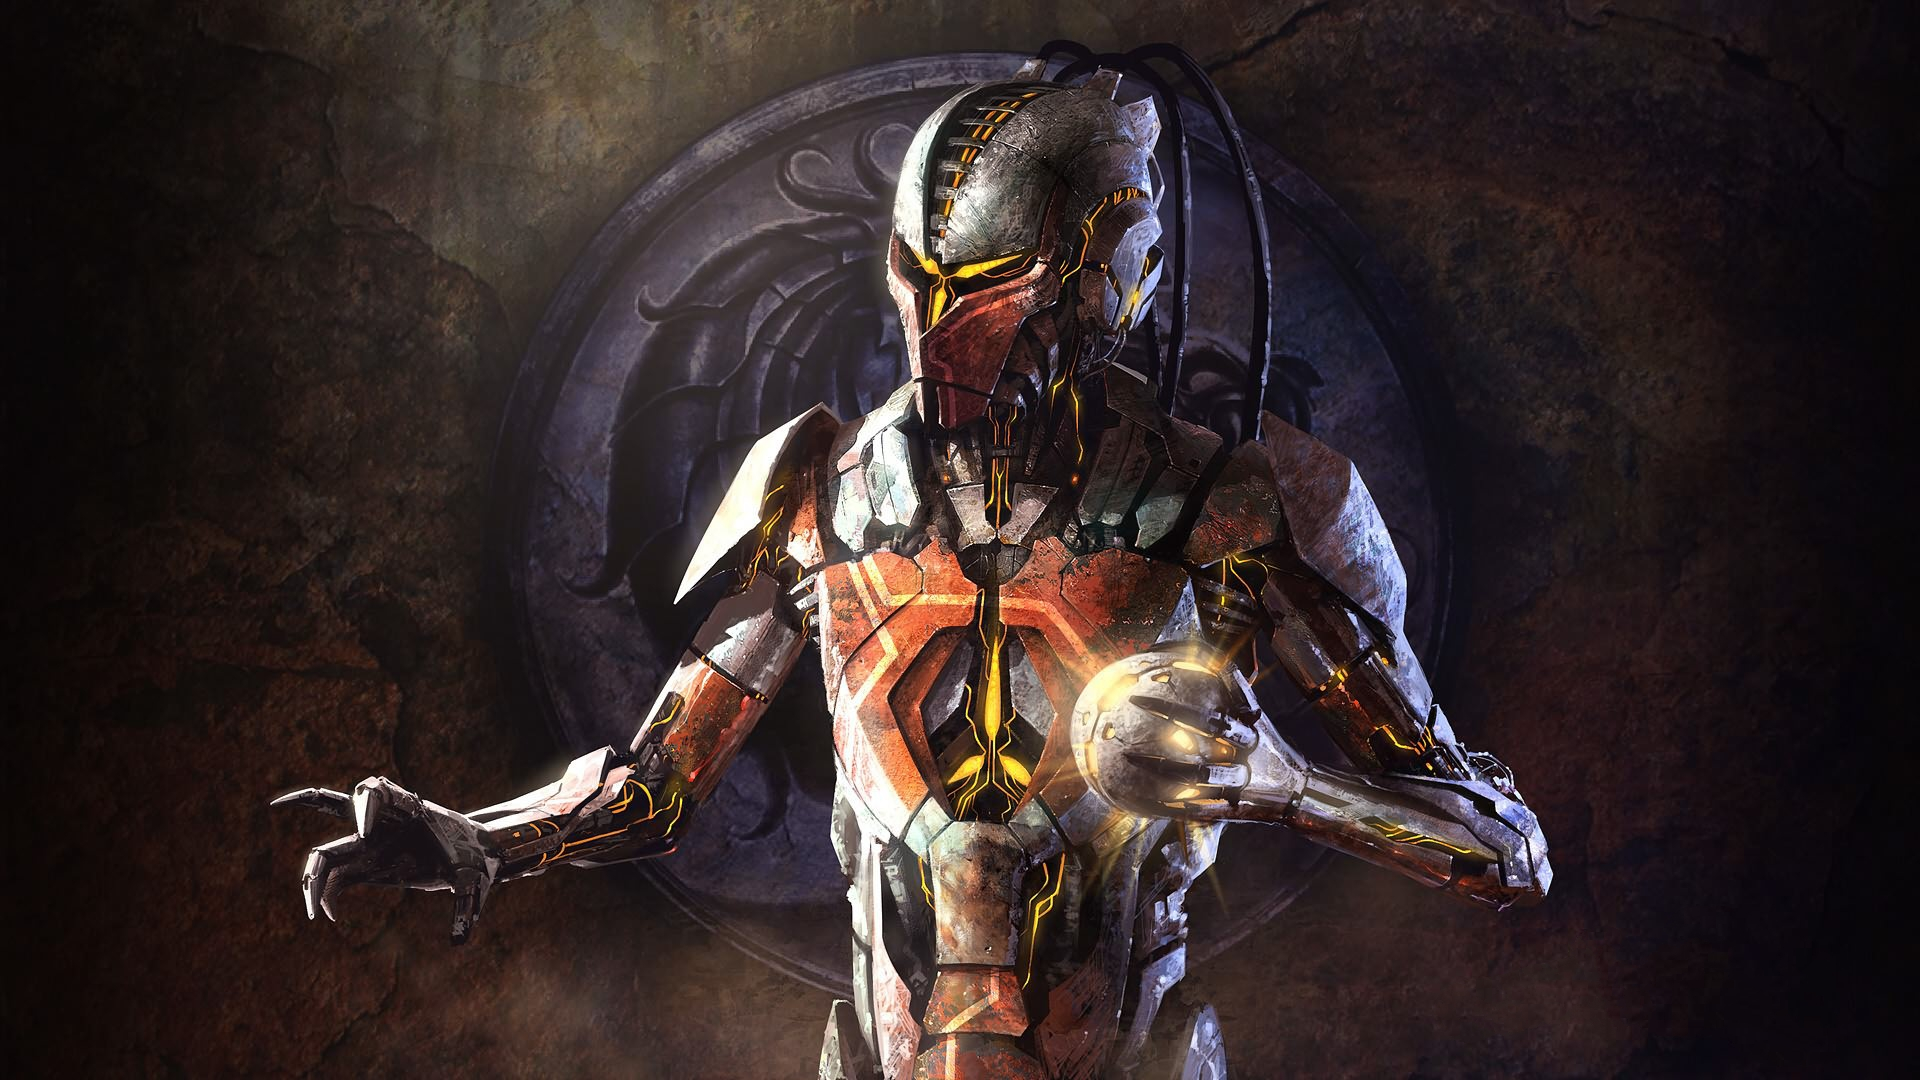 Mortal Kombat X Wallpapers, Pictures, Images